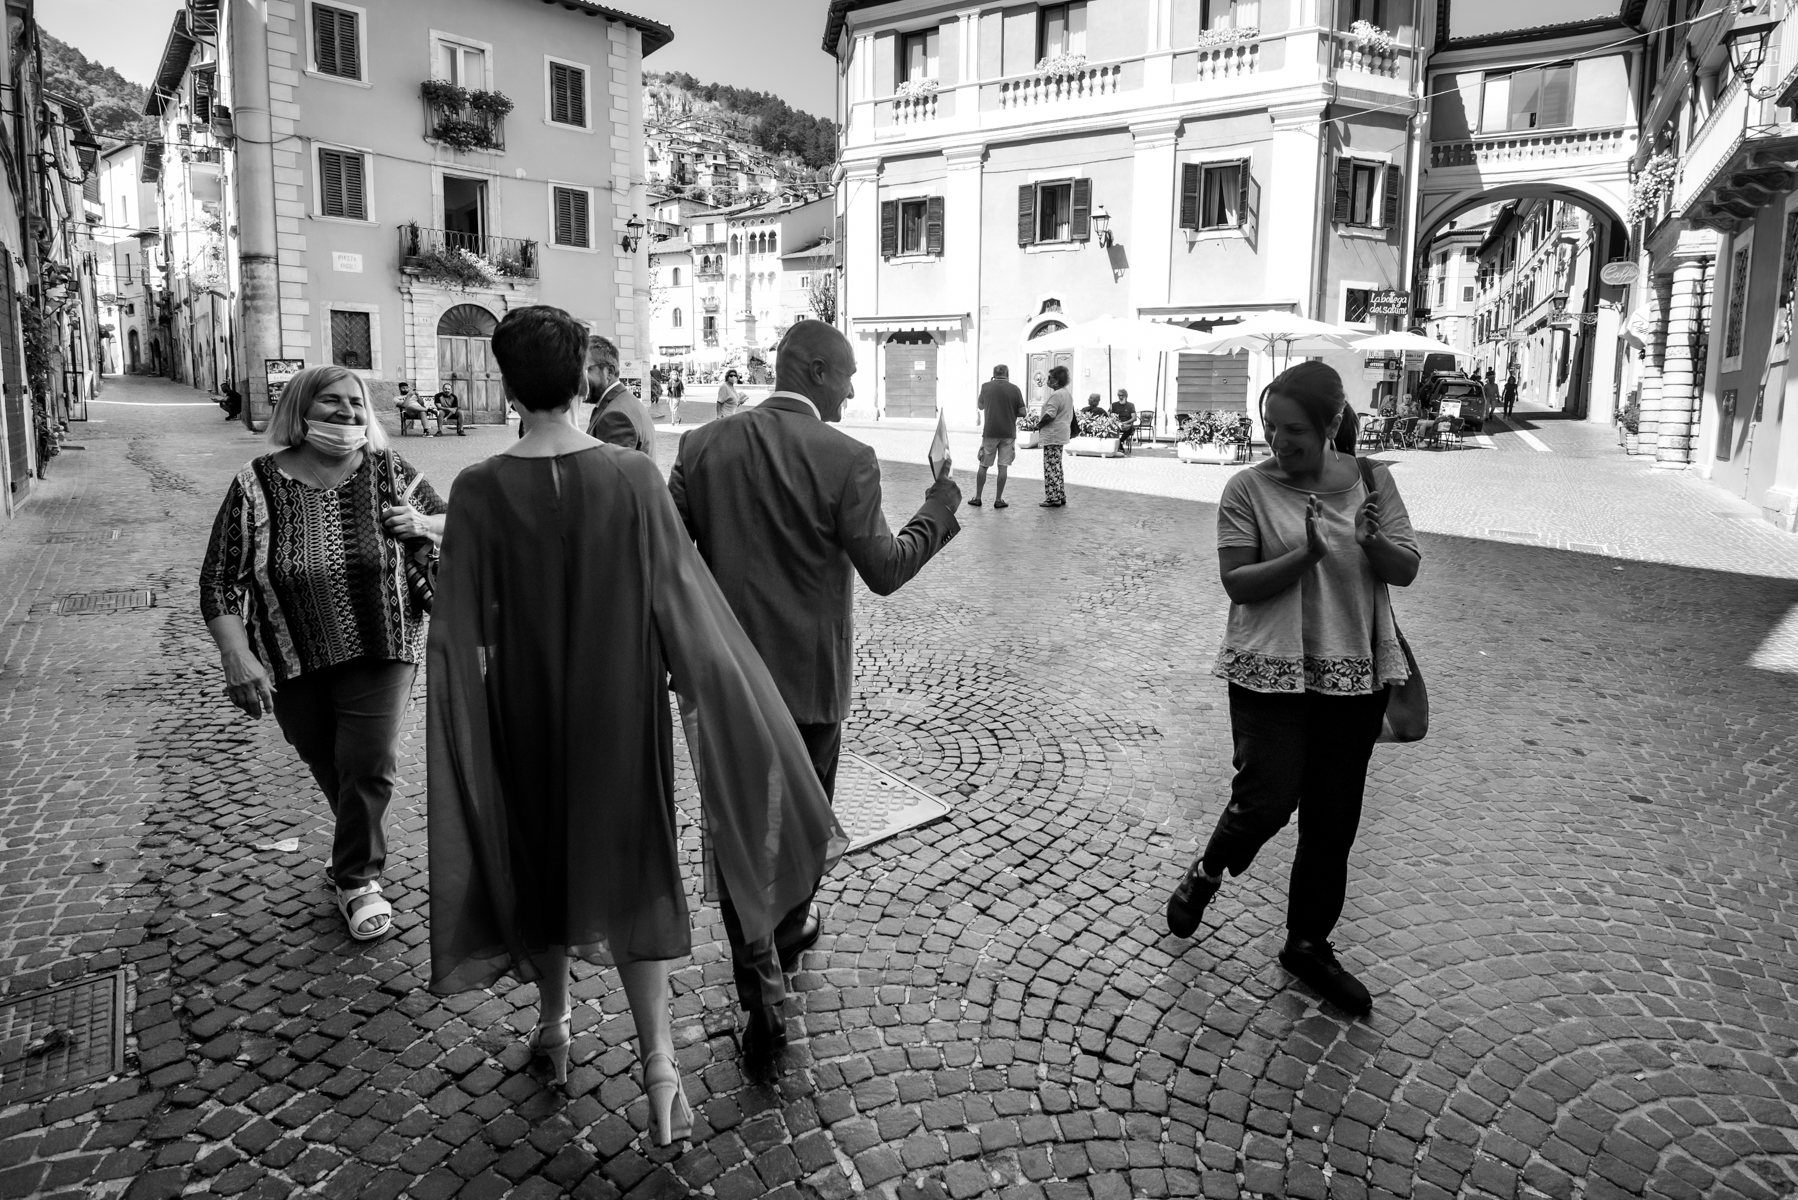 Piazza Obelisco Elopement Photography - L'Aquila - Italy | The bride and groom, with their guests in line, walk to the reception venue heading towards the central square of the town